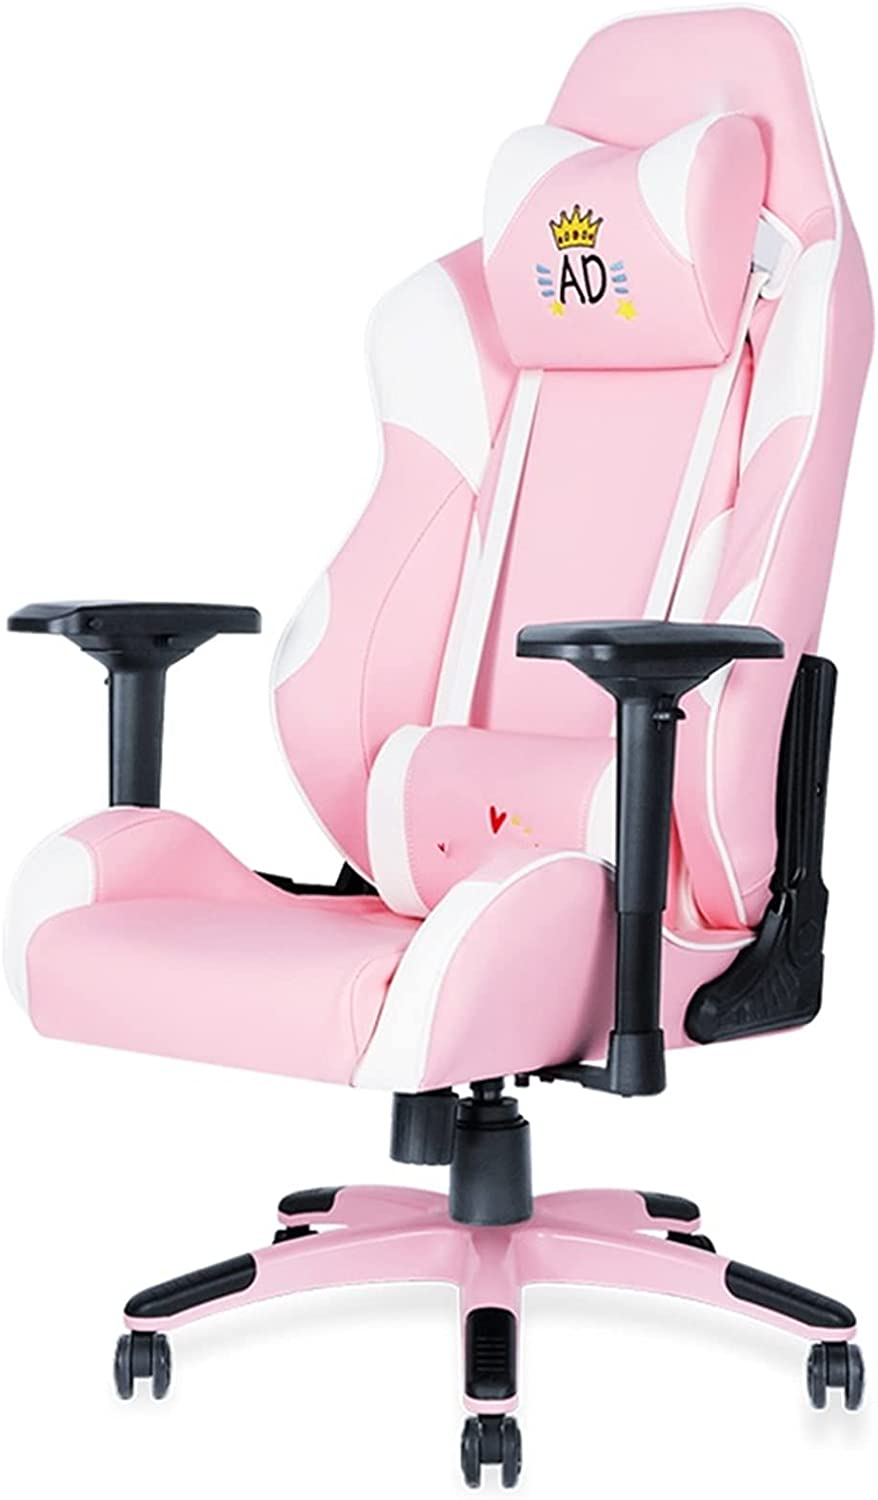 HYCJJL Boss Office Chair A surprise price is realized Gaming Style B Las Vegas Mall High Racing